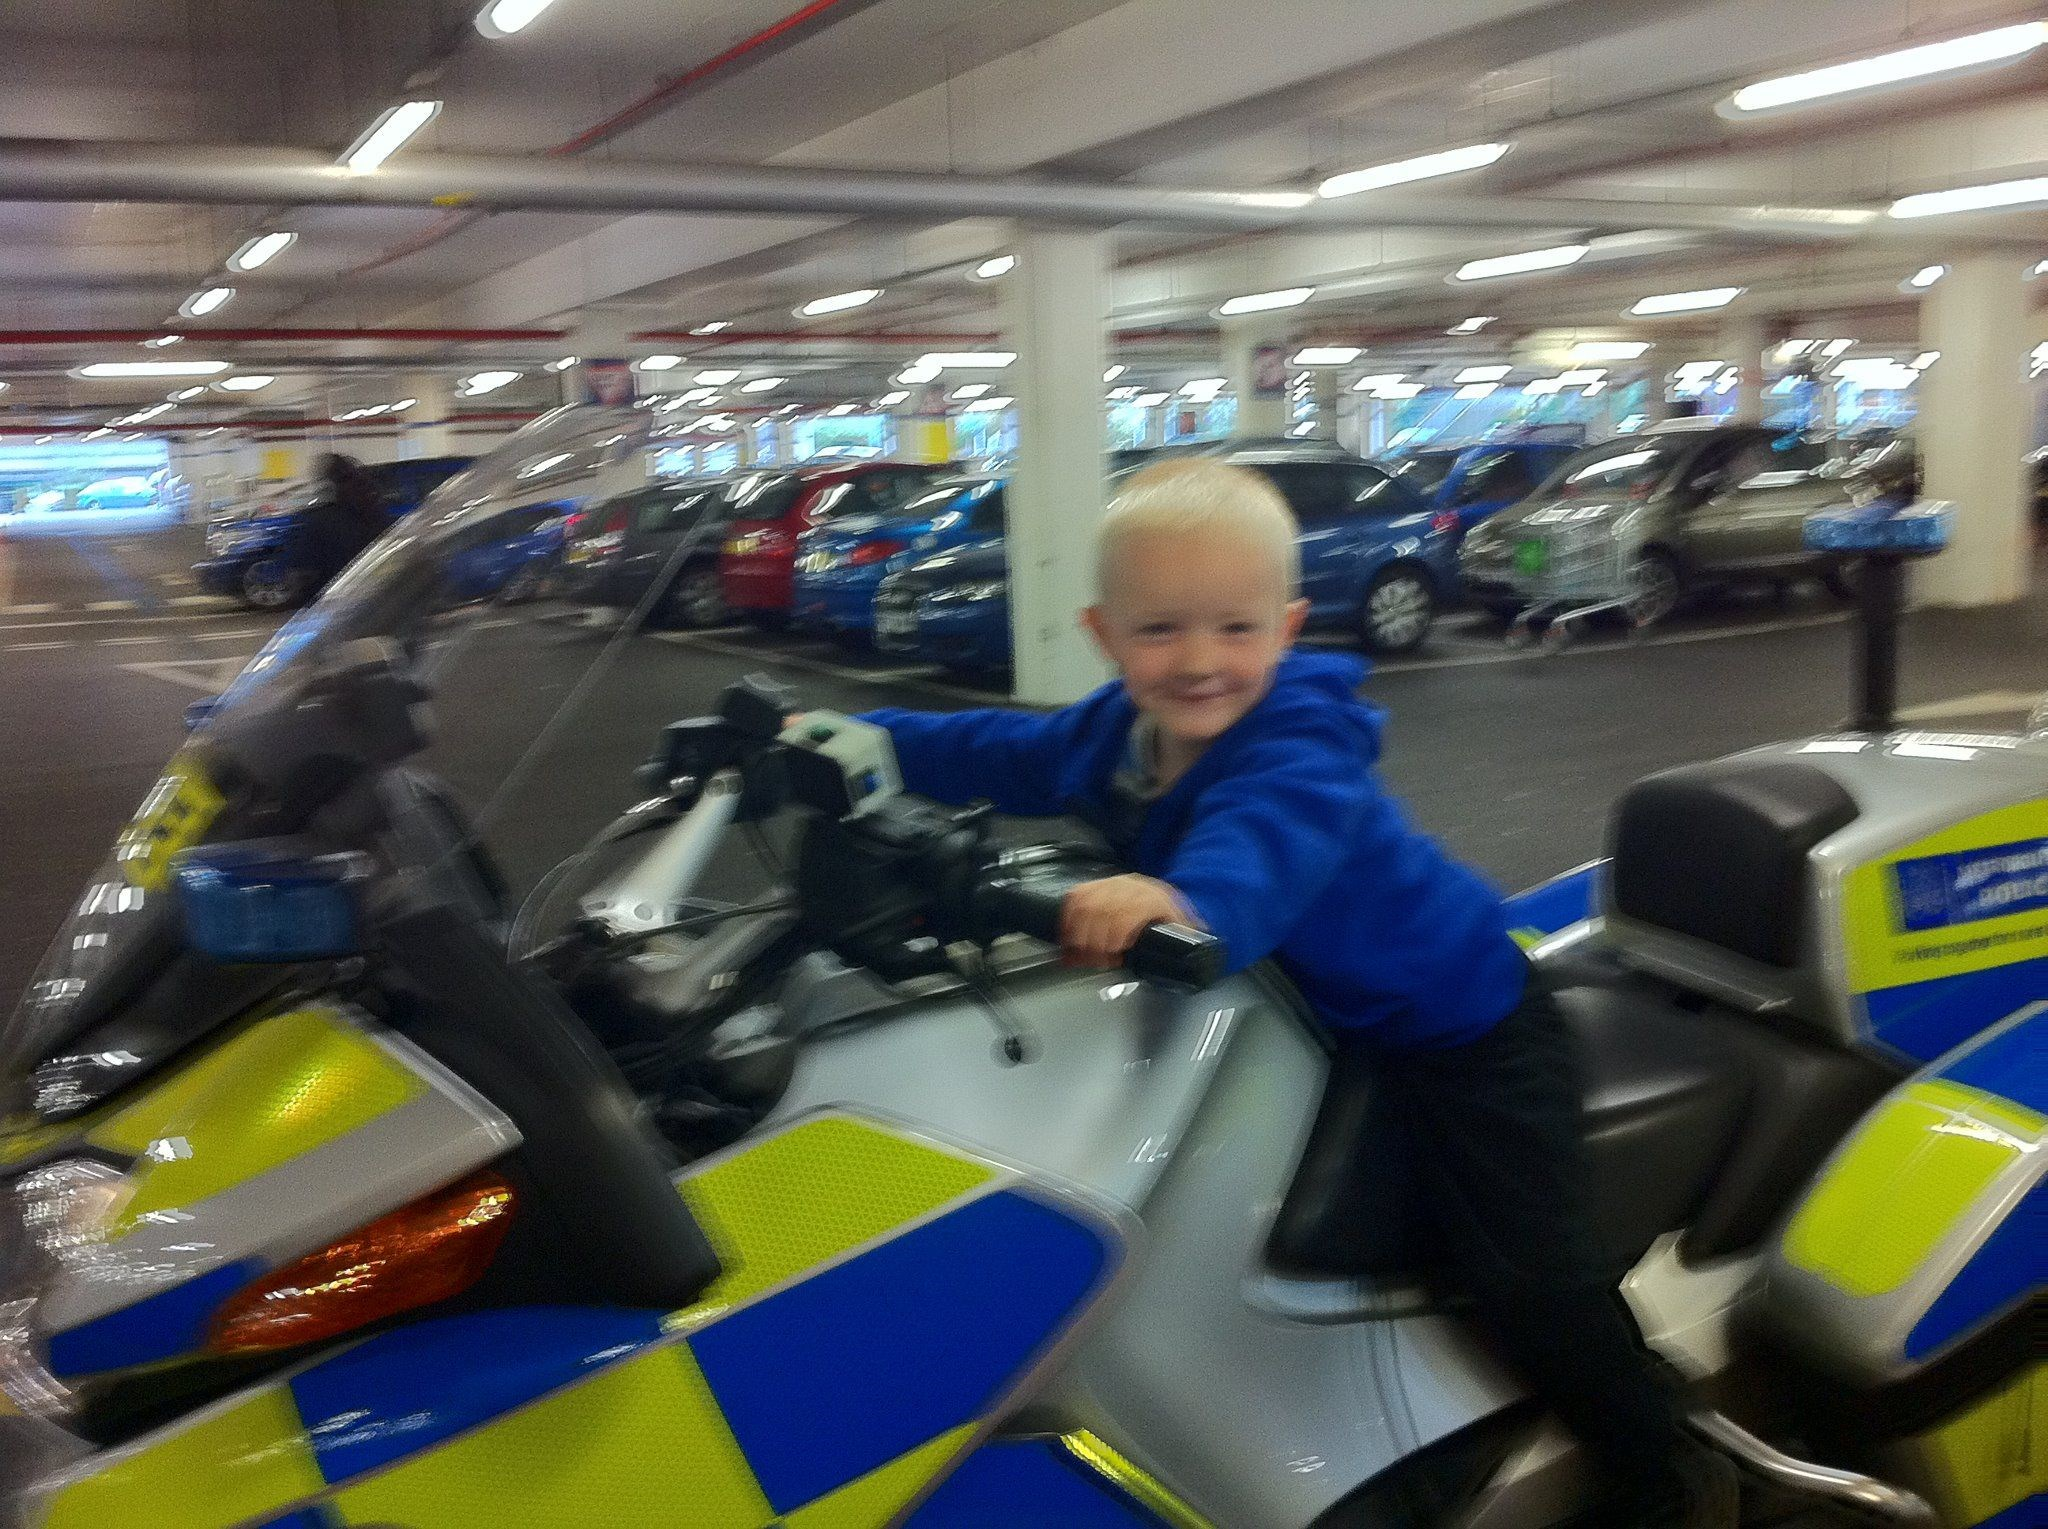 Pure cheekyness got him sitting on this bike! i wonder where he gets it from!